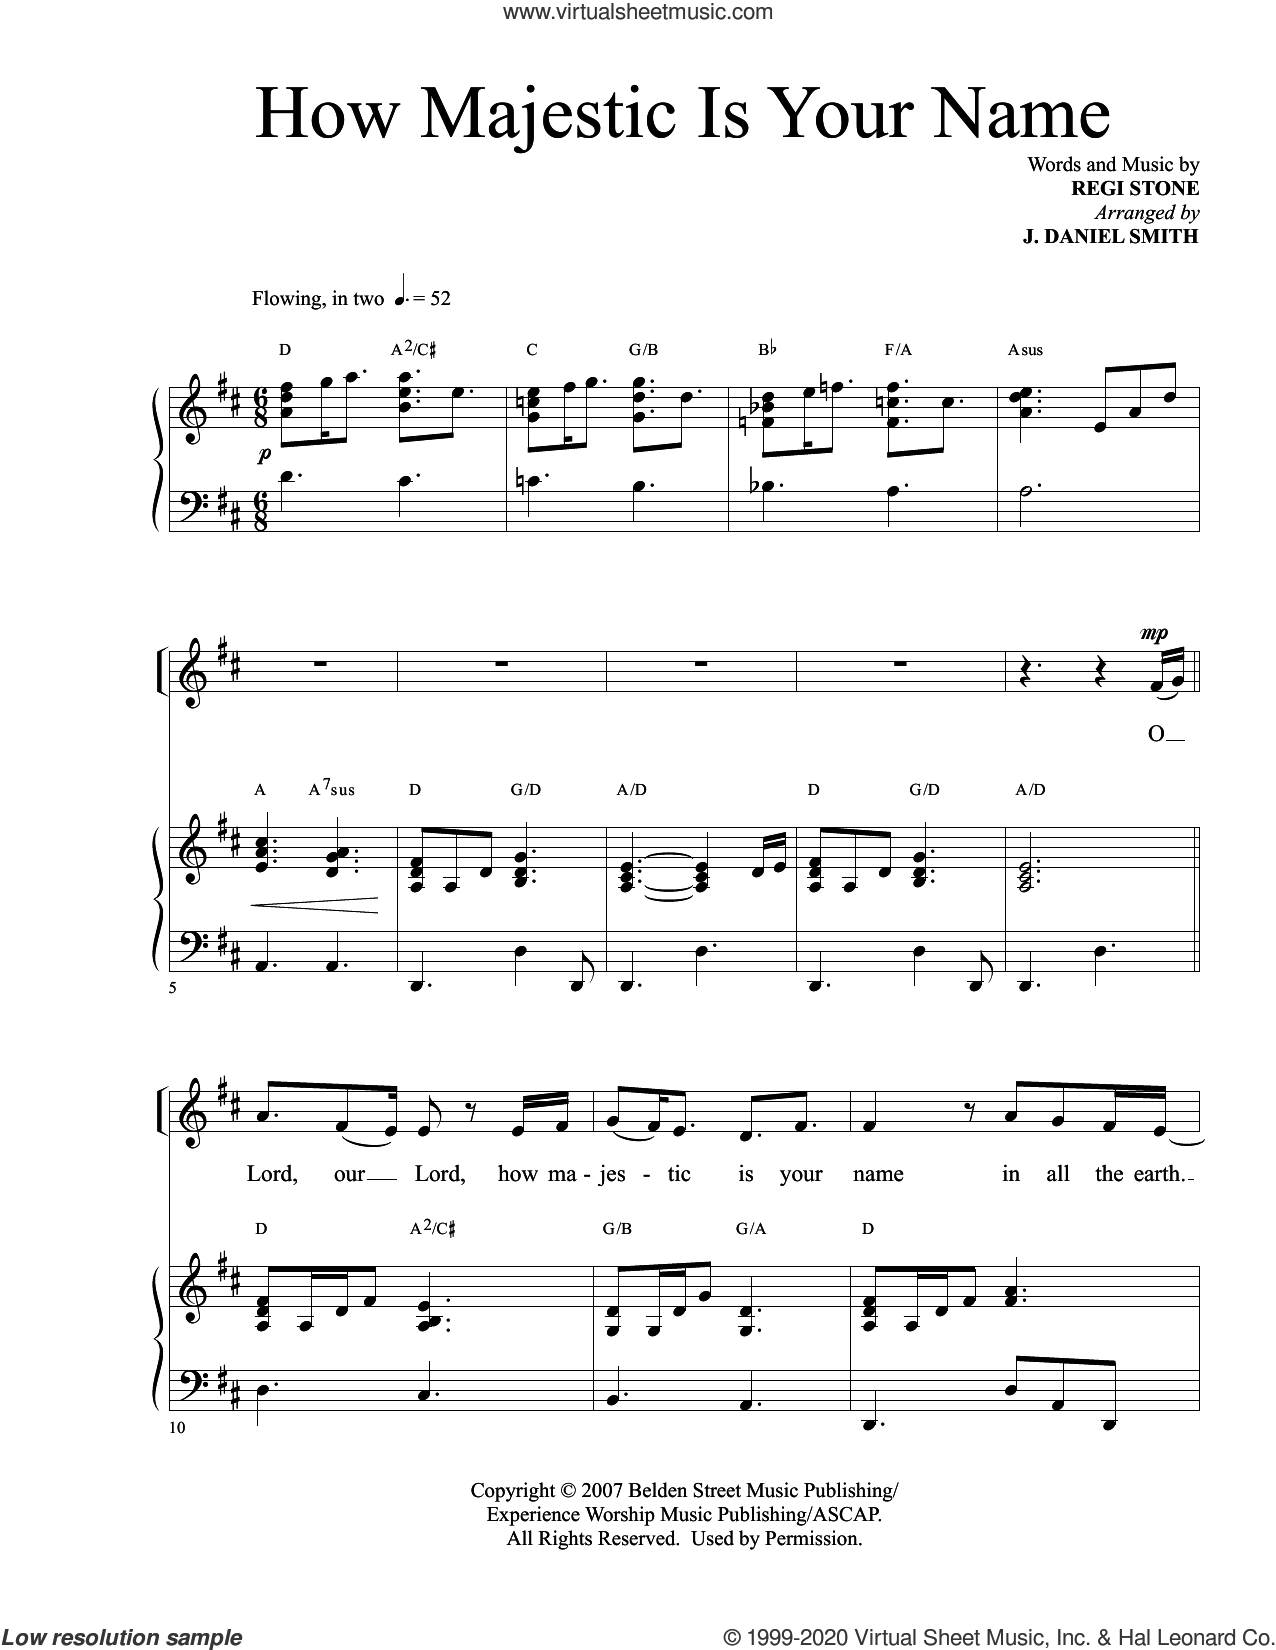 How Majestic Is Your Name (arr. J. Daniel Smith) sheet music for voice and piano by Regi Stone and J. Daniel Smith, intermediate skill level